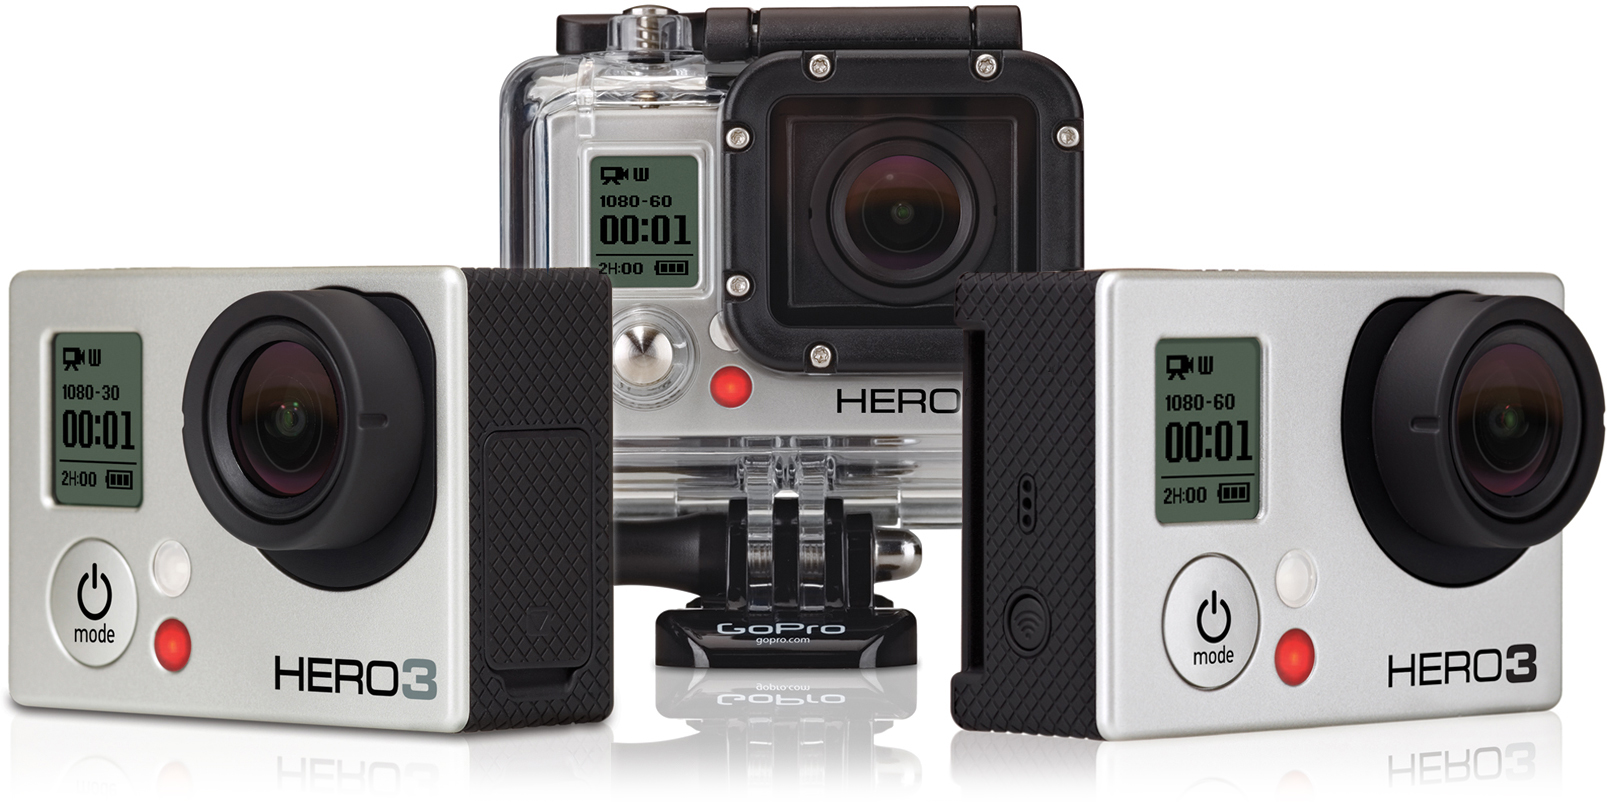 gopro announces the new hero3 action camera accessories. Black Bedroom Furniture Sets. Home Design Ideas